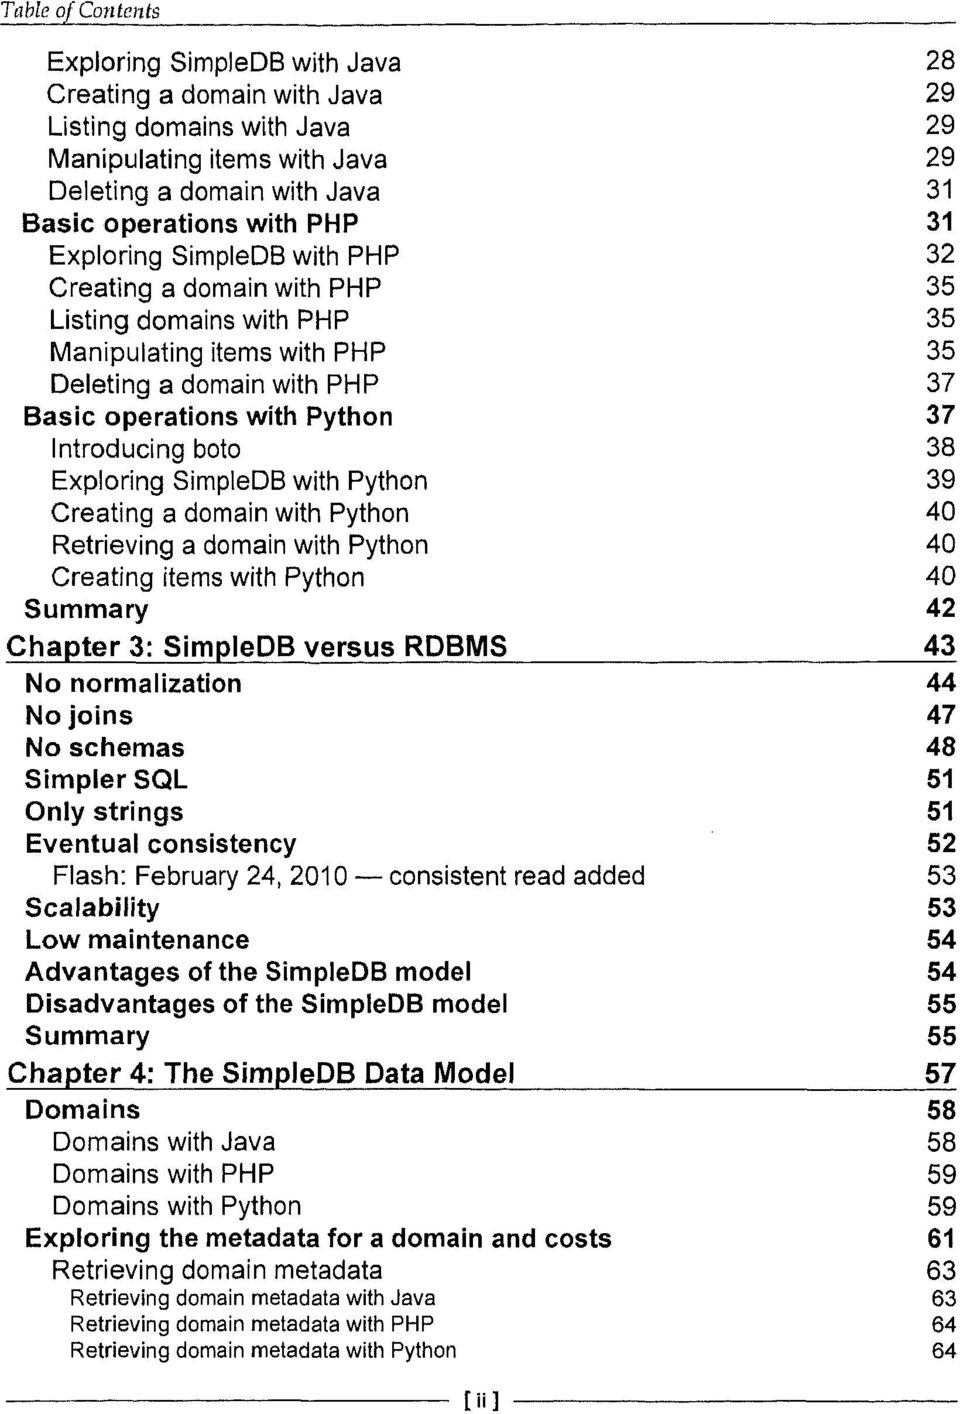 Python 37 Introducing boto 38 Exploring SimpleDB with Python 39 Creating a domain with Python 40 Retrieving a domain with Python 40 Creating items with Python 40 Summary 42 Chapter 3: SimpleDB versus